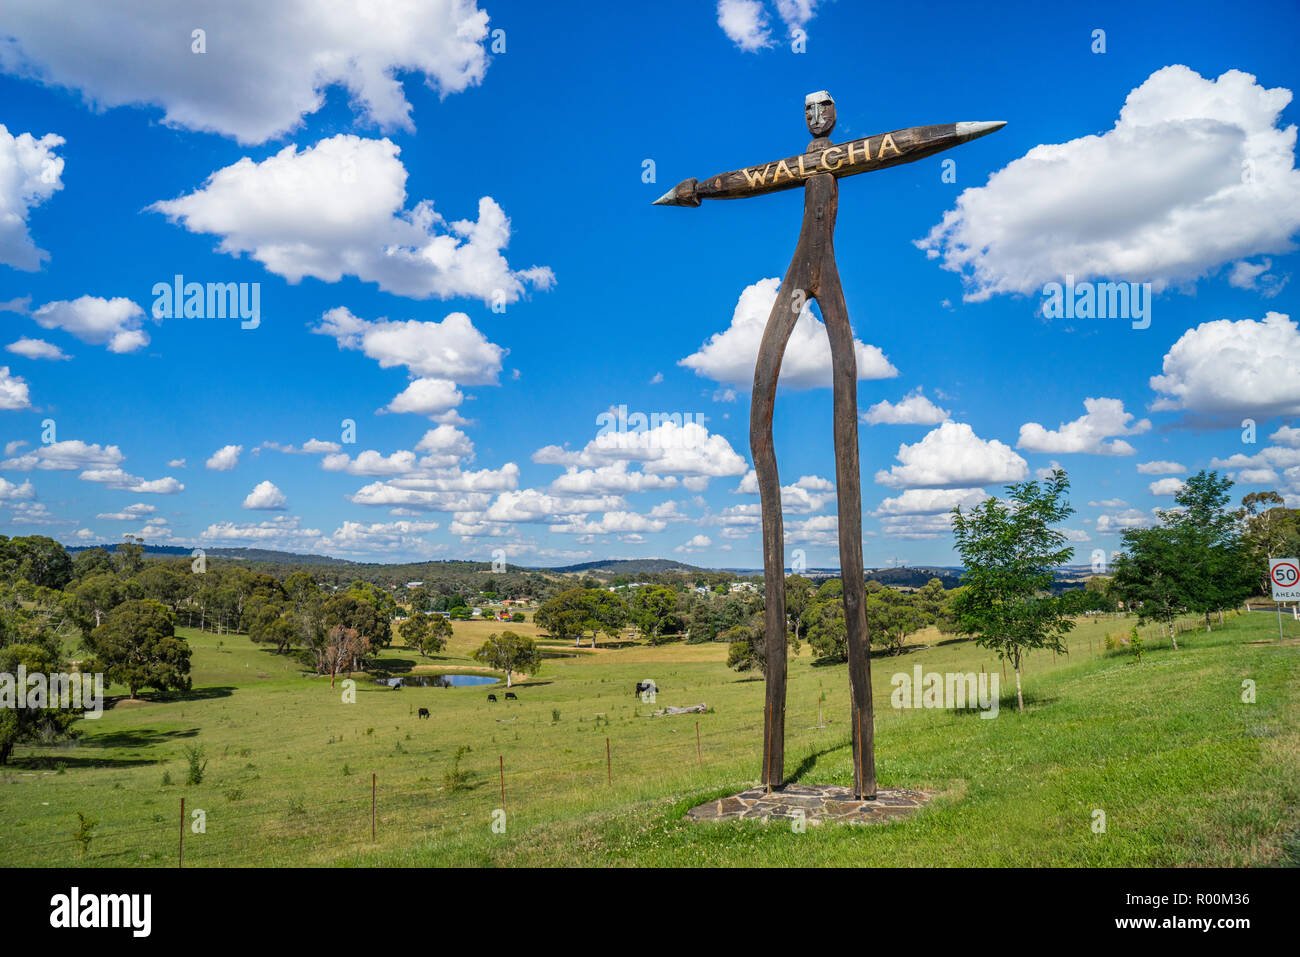 the tallowwood sculpture titled 'True born native man' by Nigel White, greets visitors to the Northern Tablelands country town of Walcha on the Oxley  - Stock Image